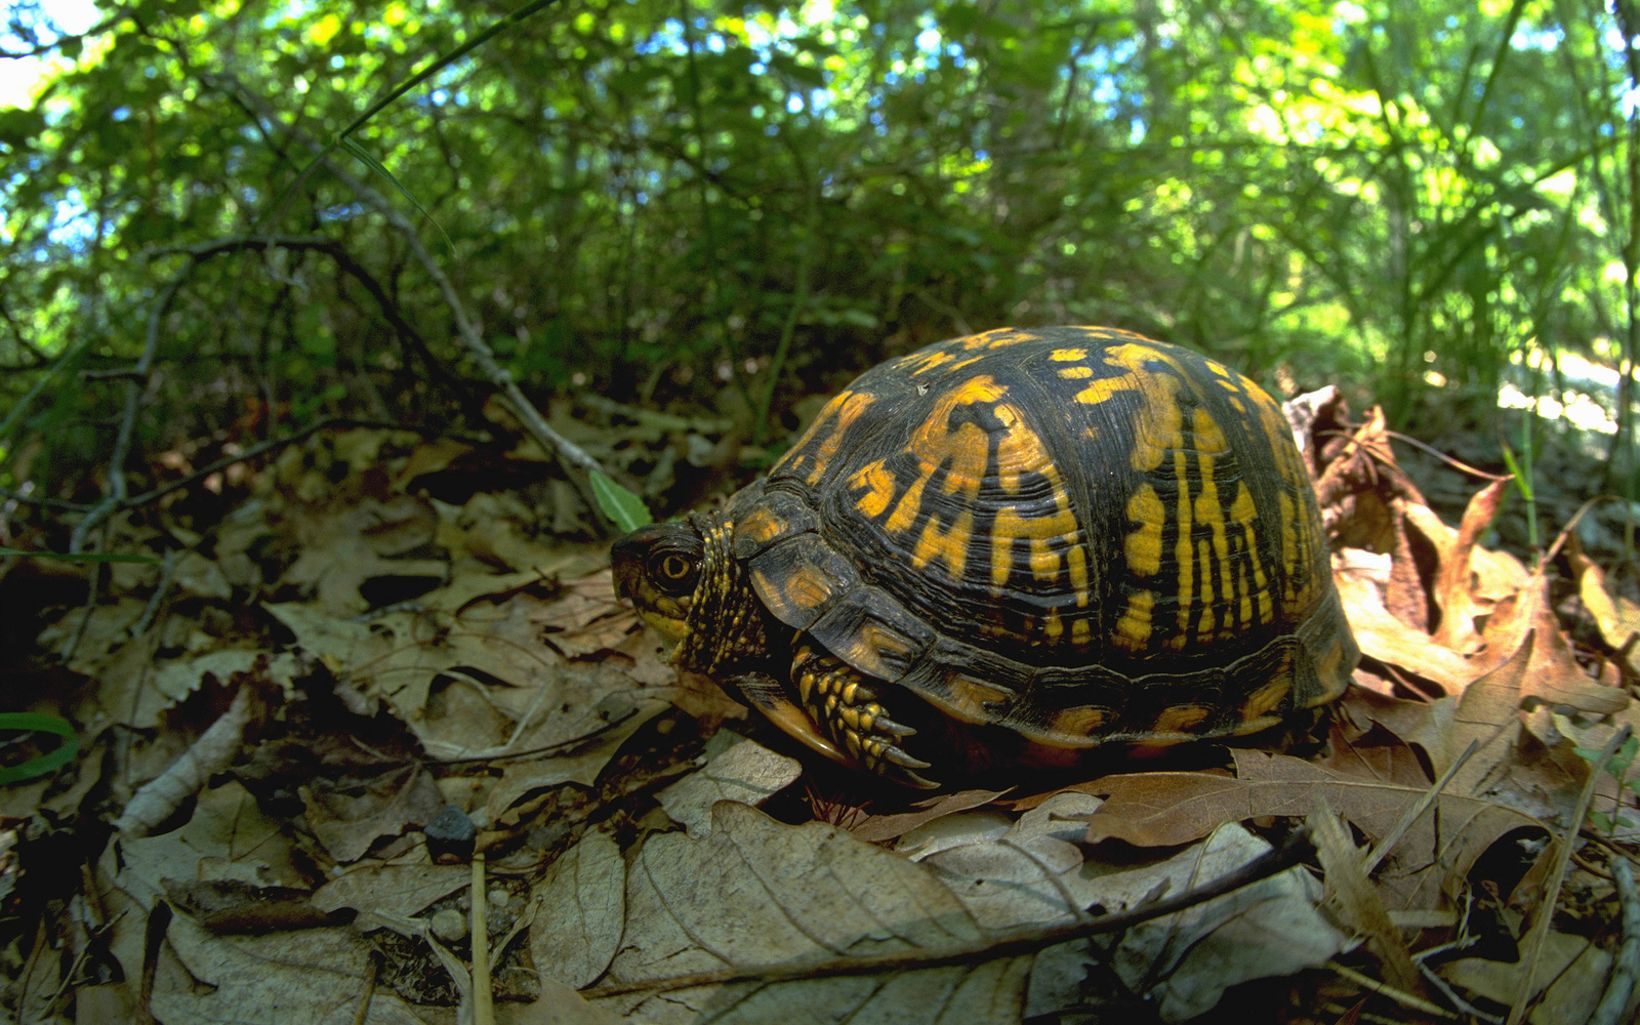 Closeup of a black and yellow box turtle sitting on a bed of dried leaves.